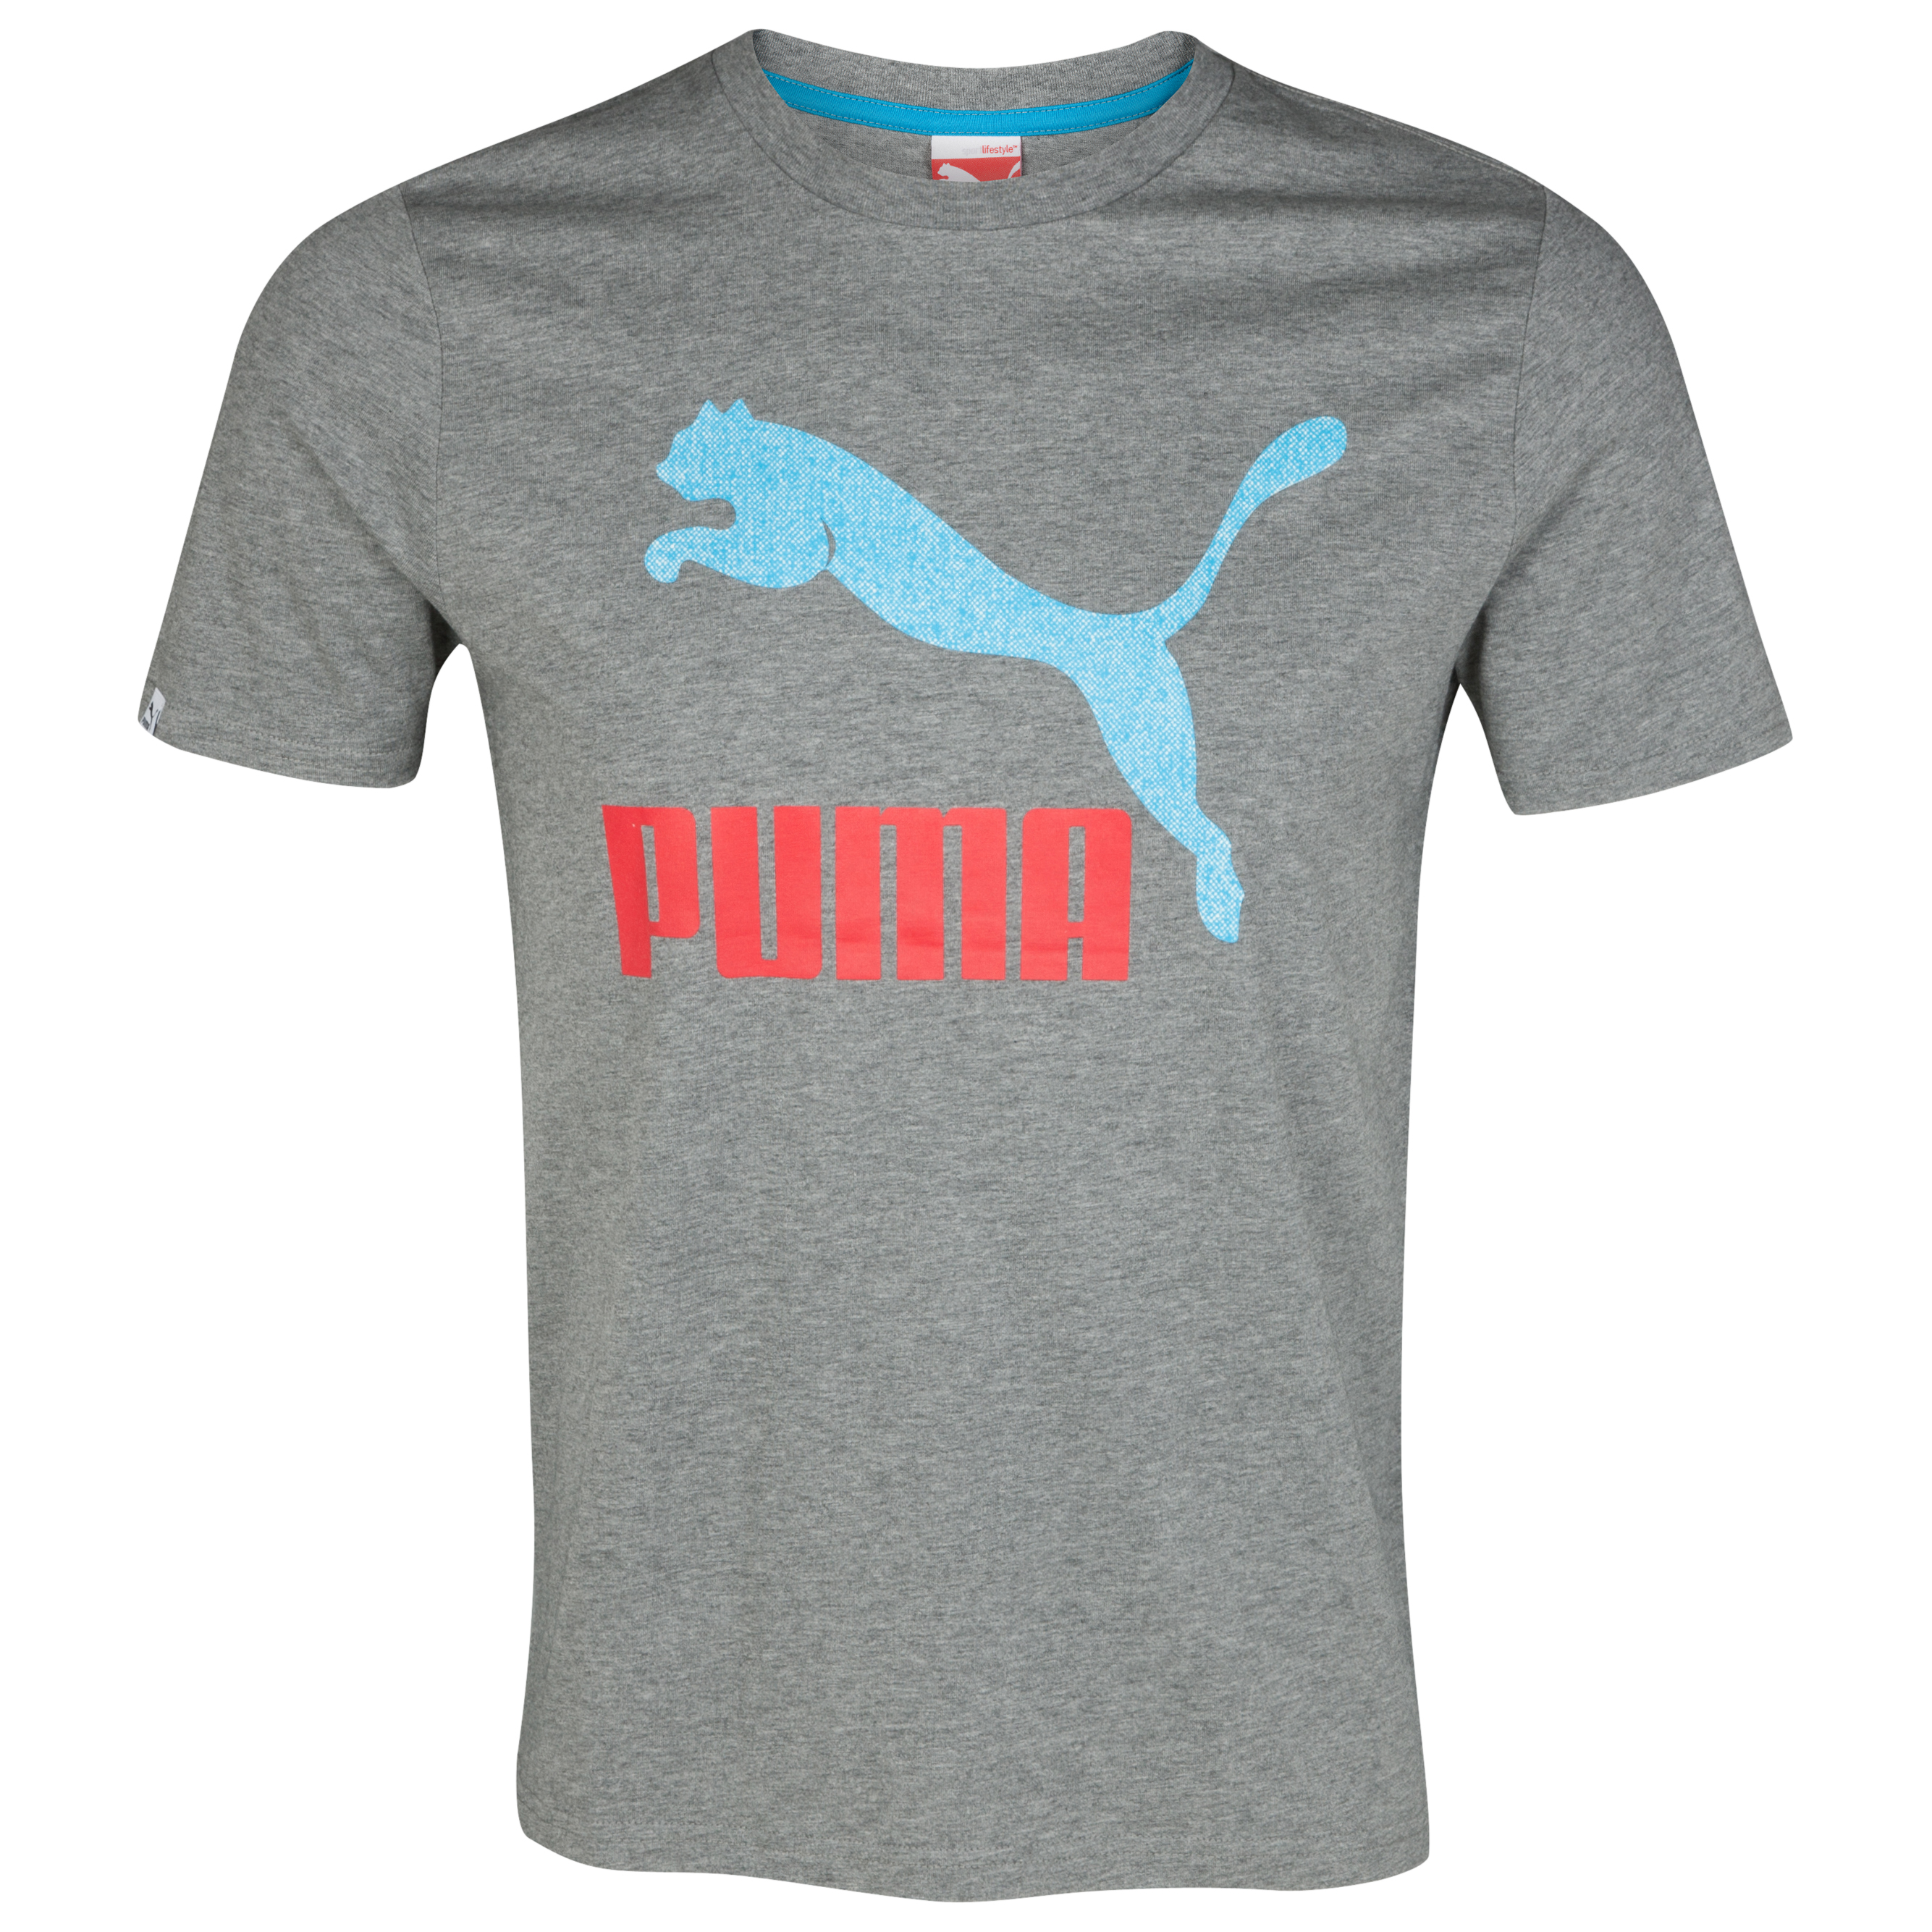 Puma Vintage No.1 Logo Tee - Medium Gray Heather